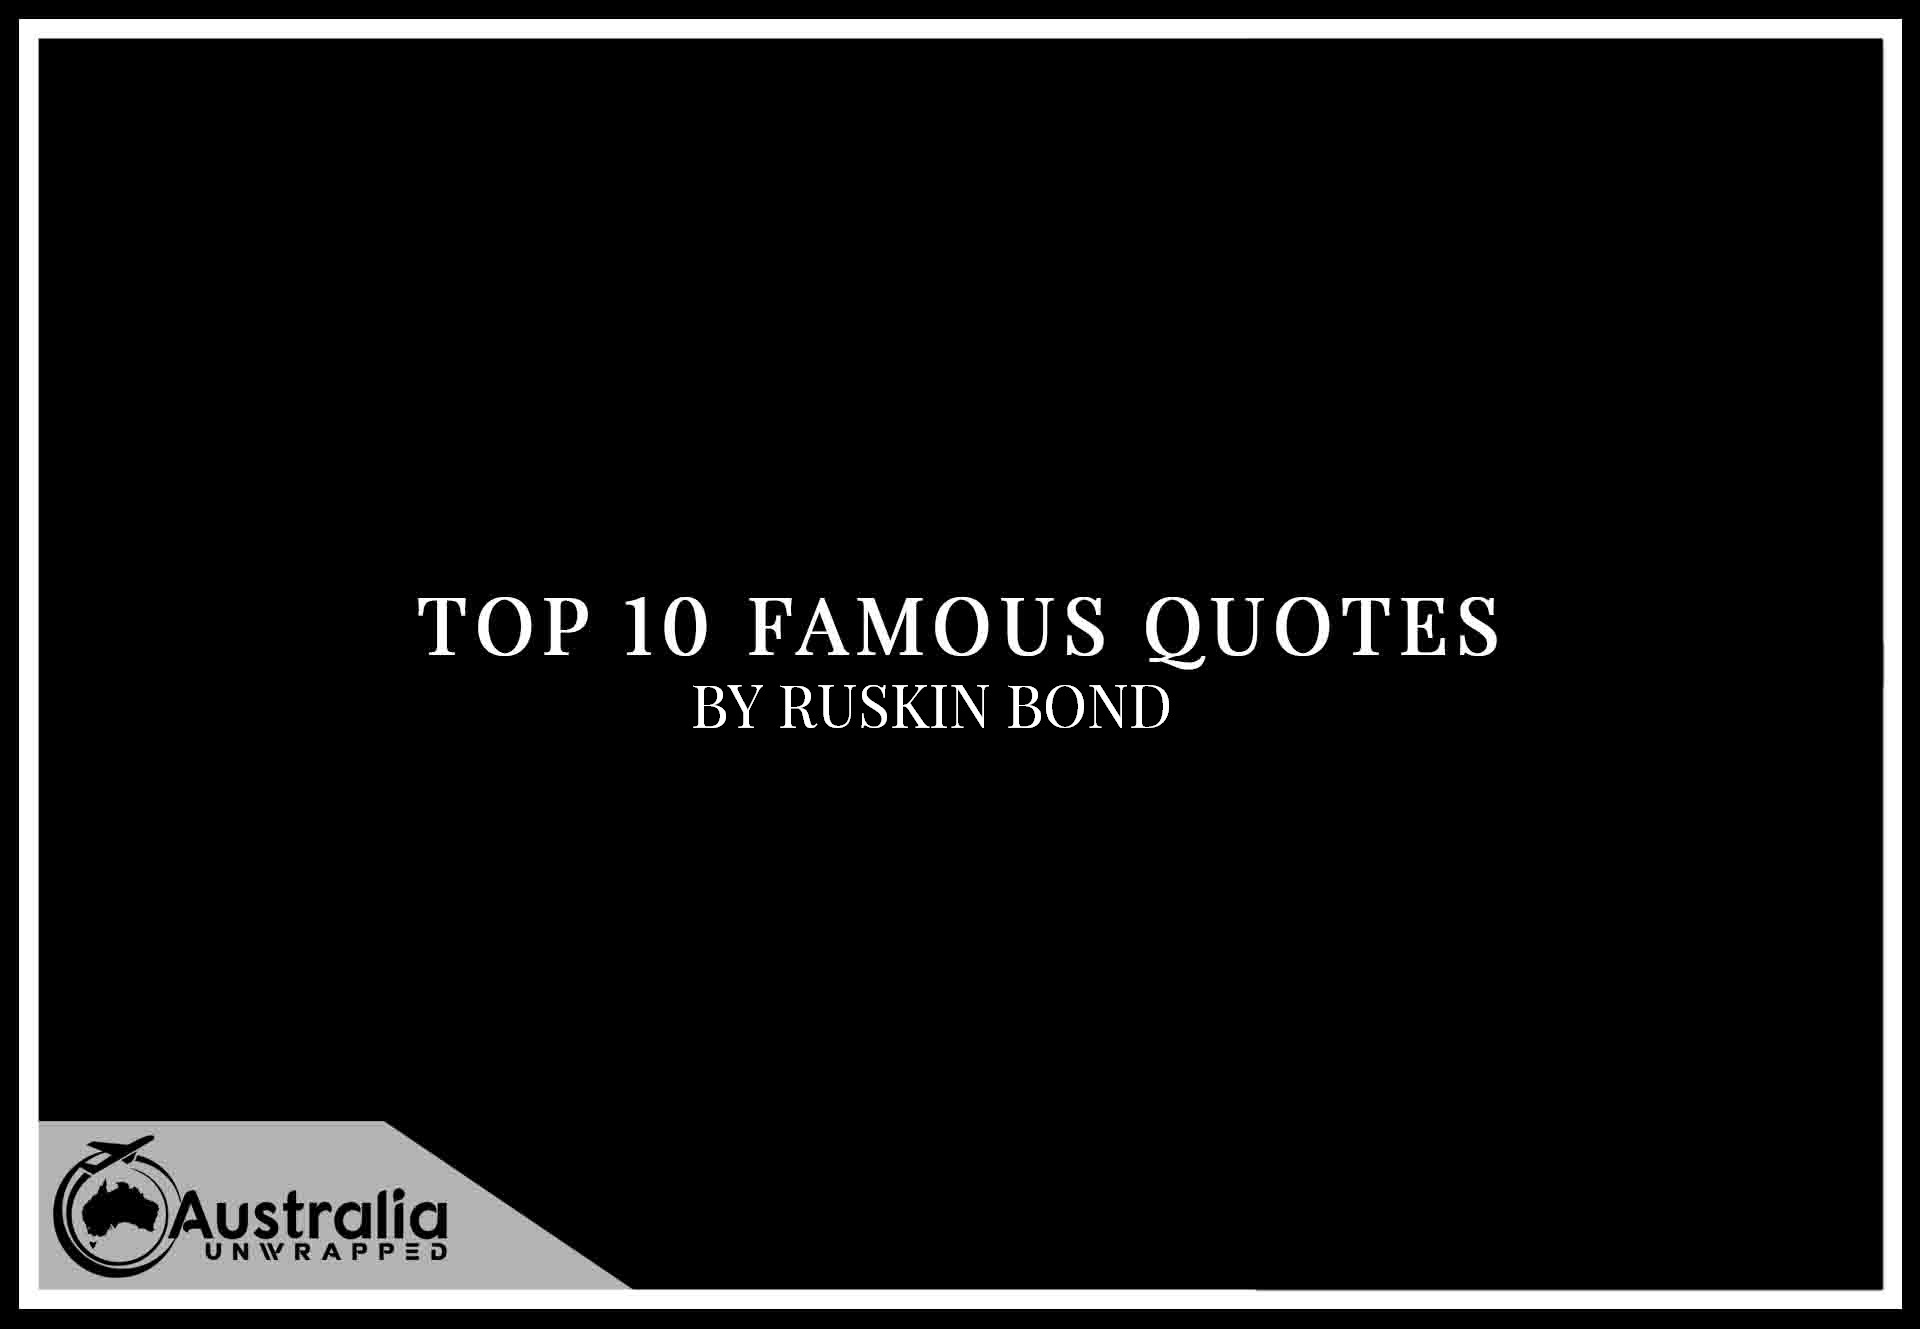 Top 10 Famous Quotes by Author Ruskin Bond